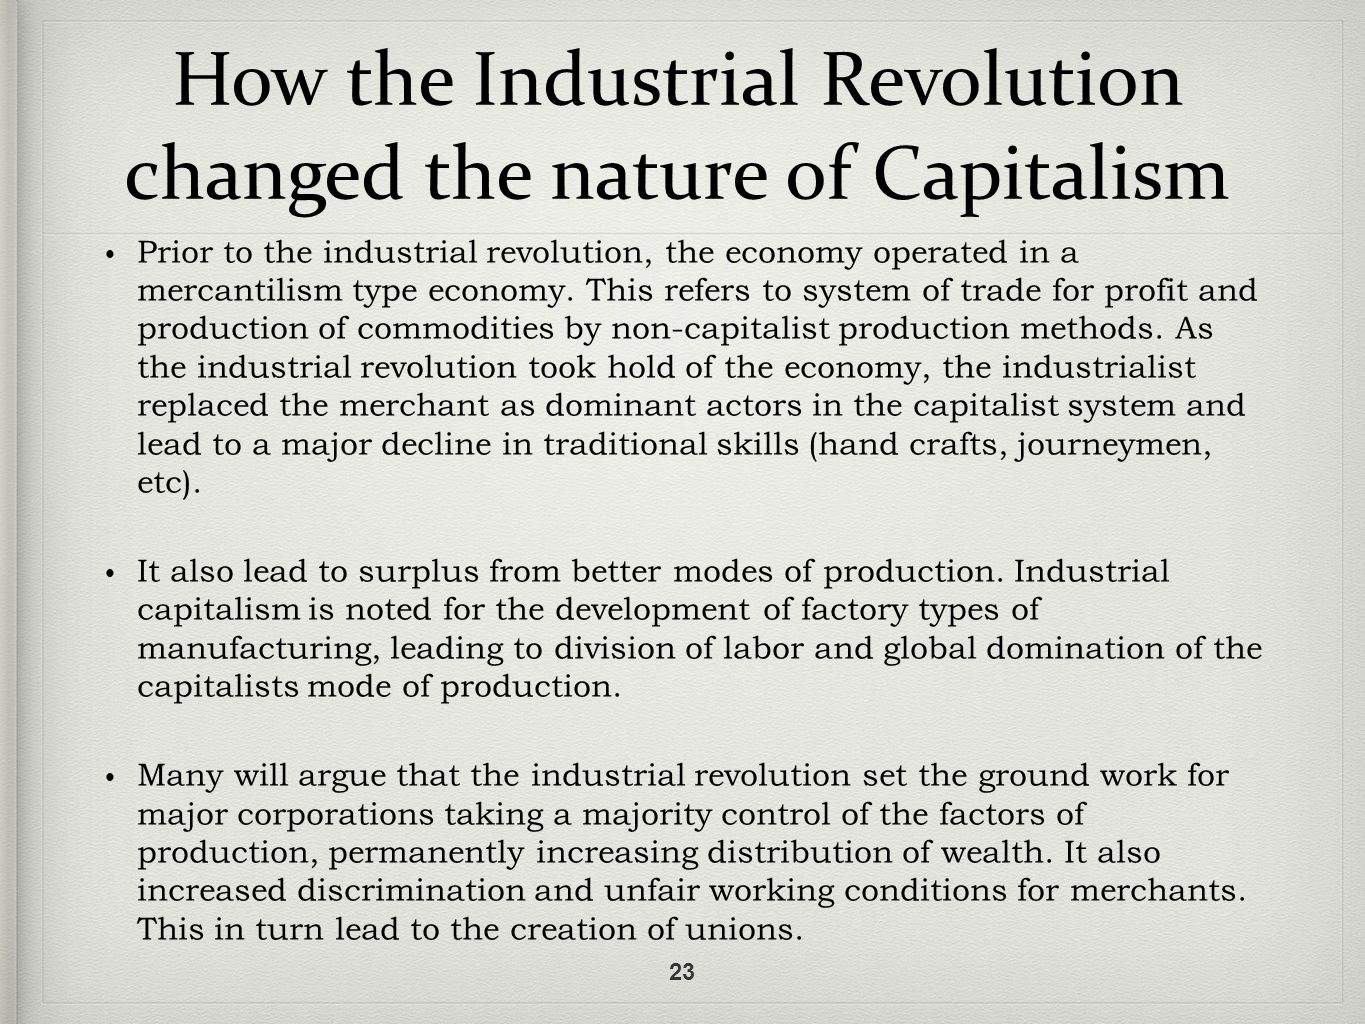 corporate development during the industrial revolution